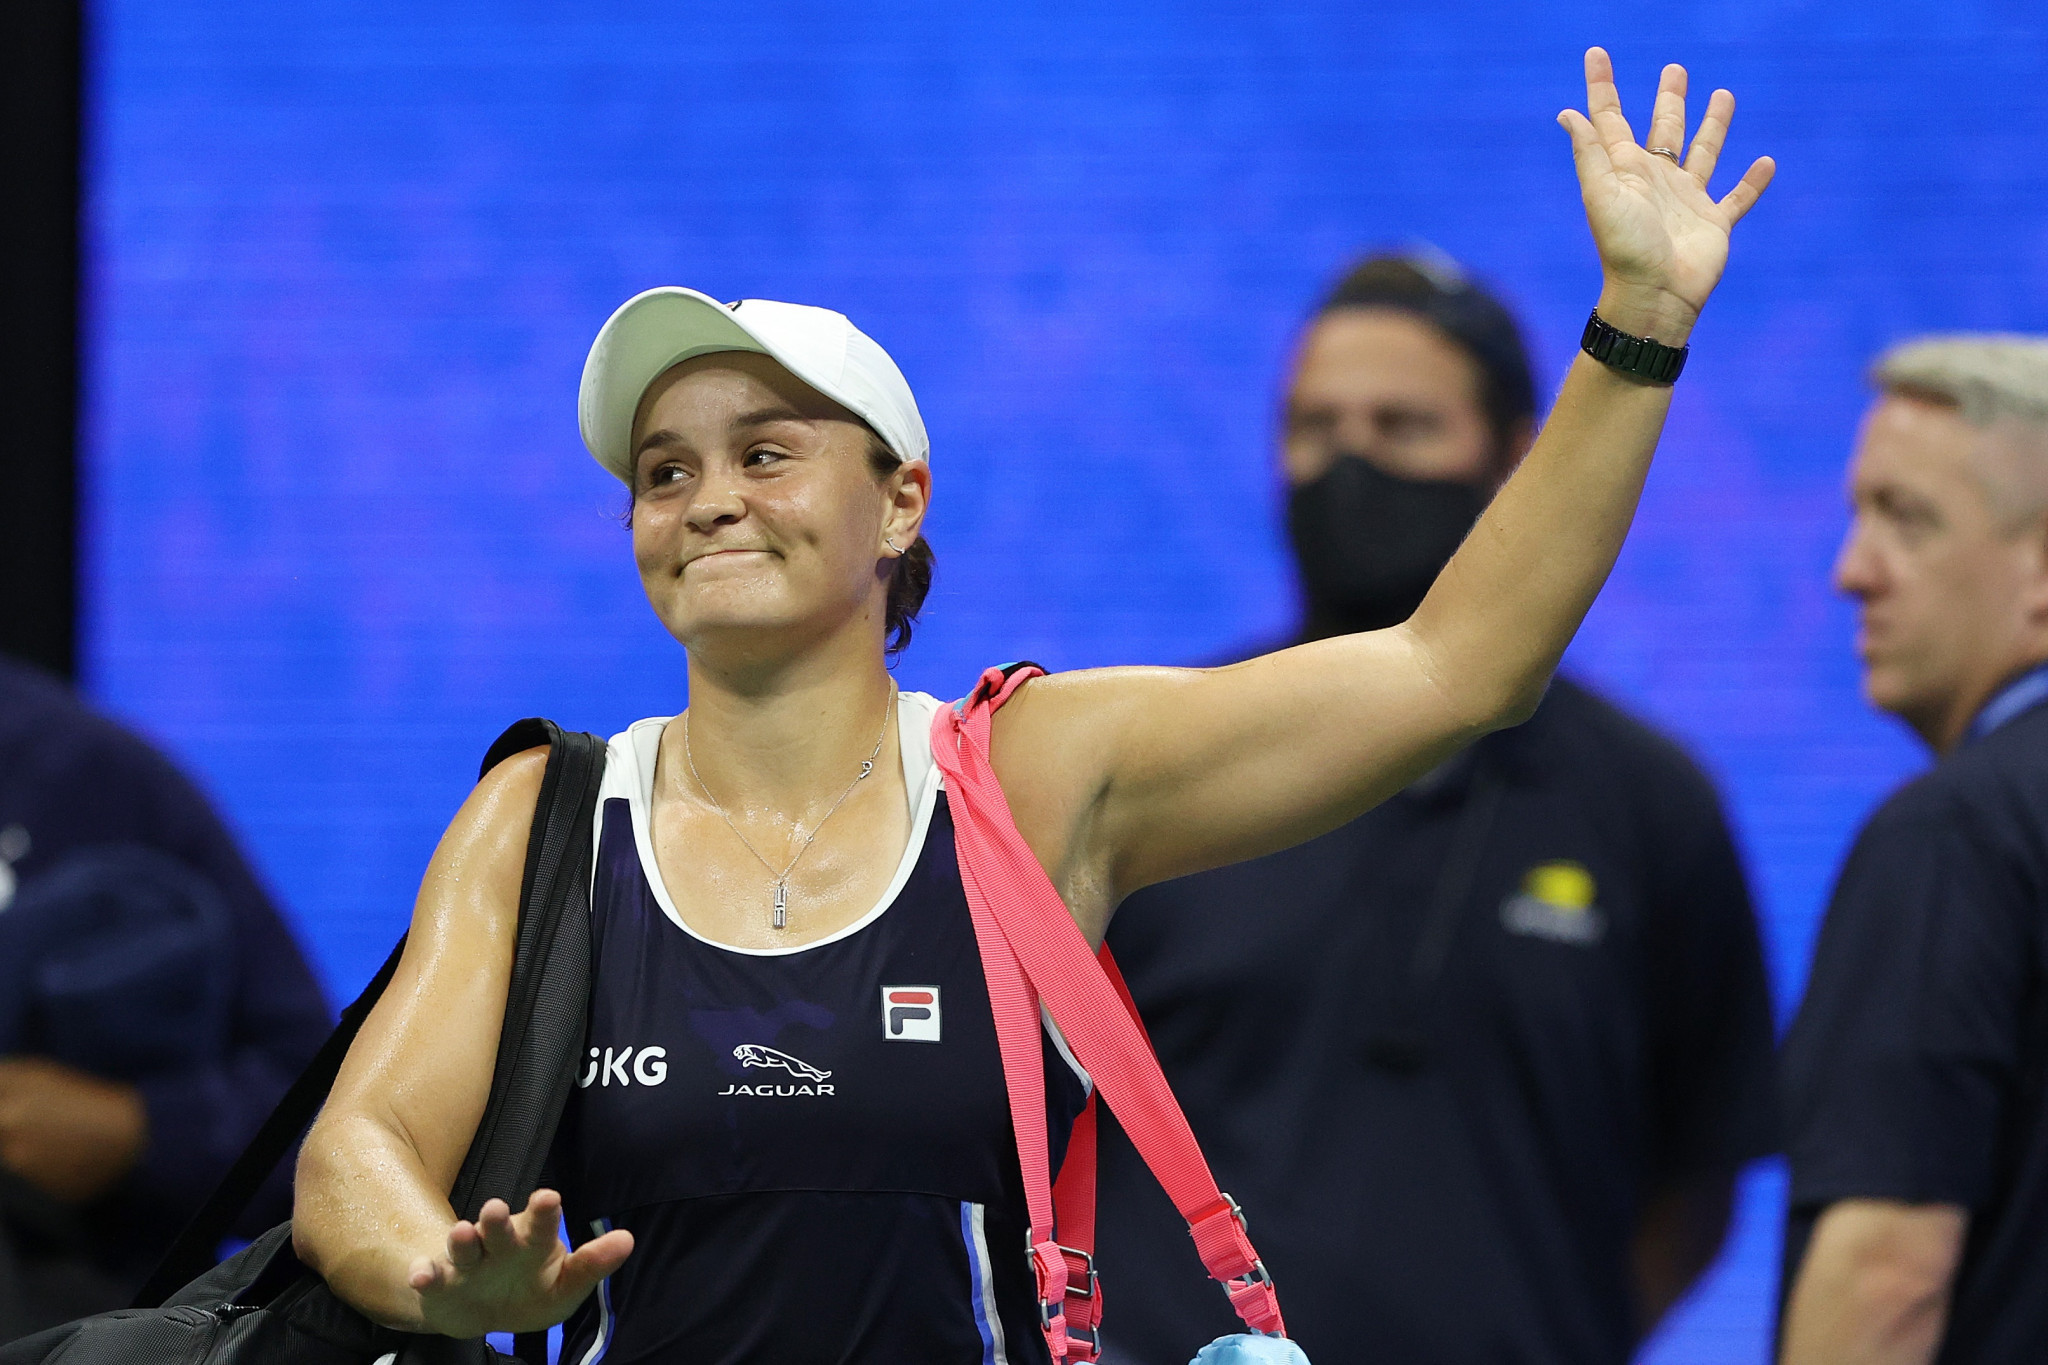 Barty cites COVID-19 travel restrictions as reason for ending season early